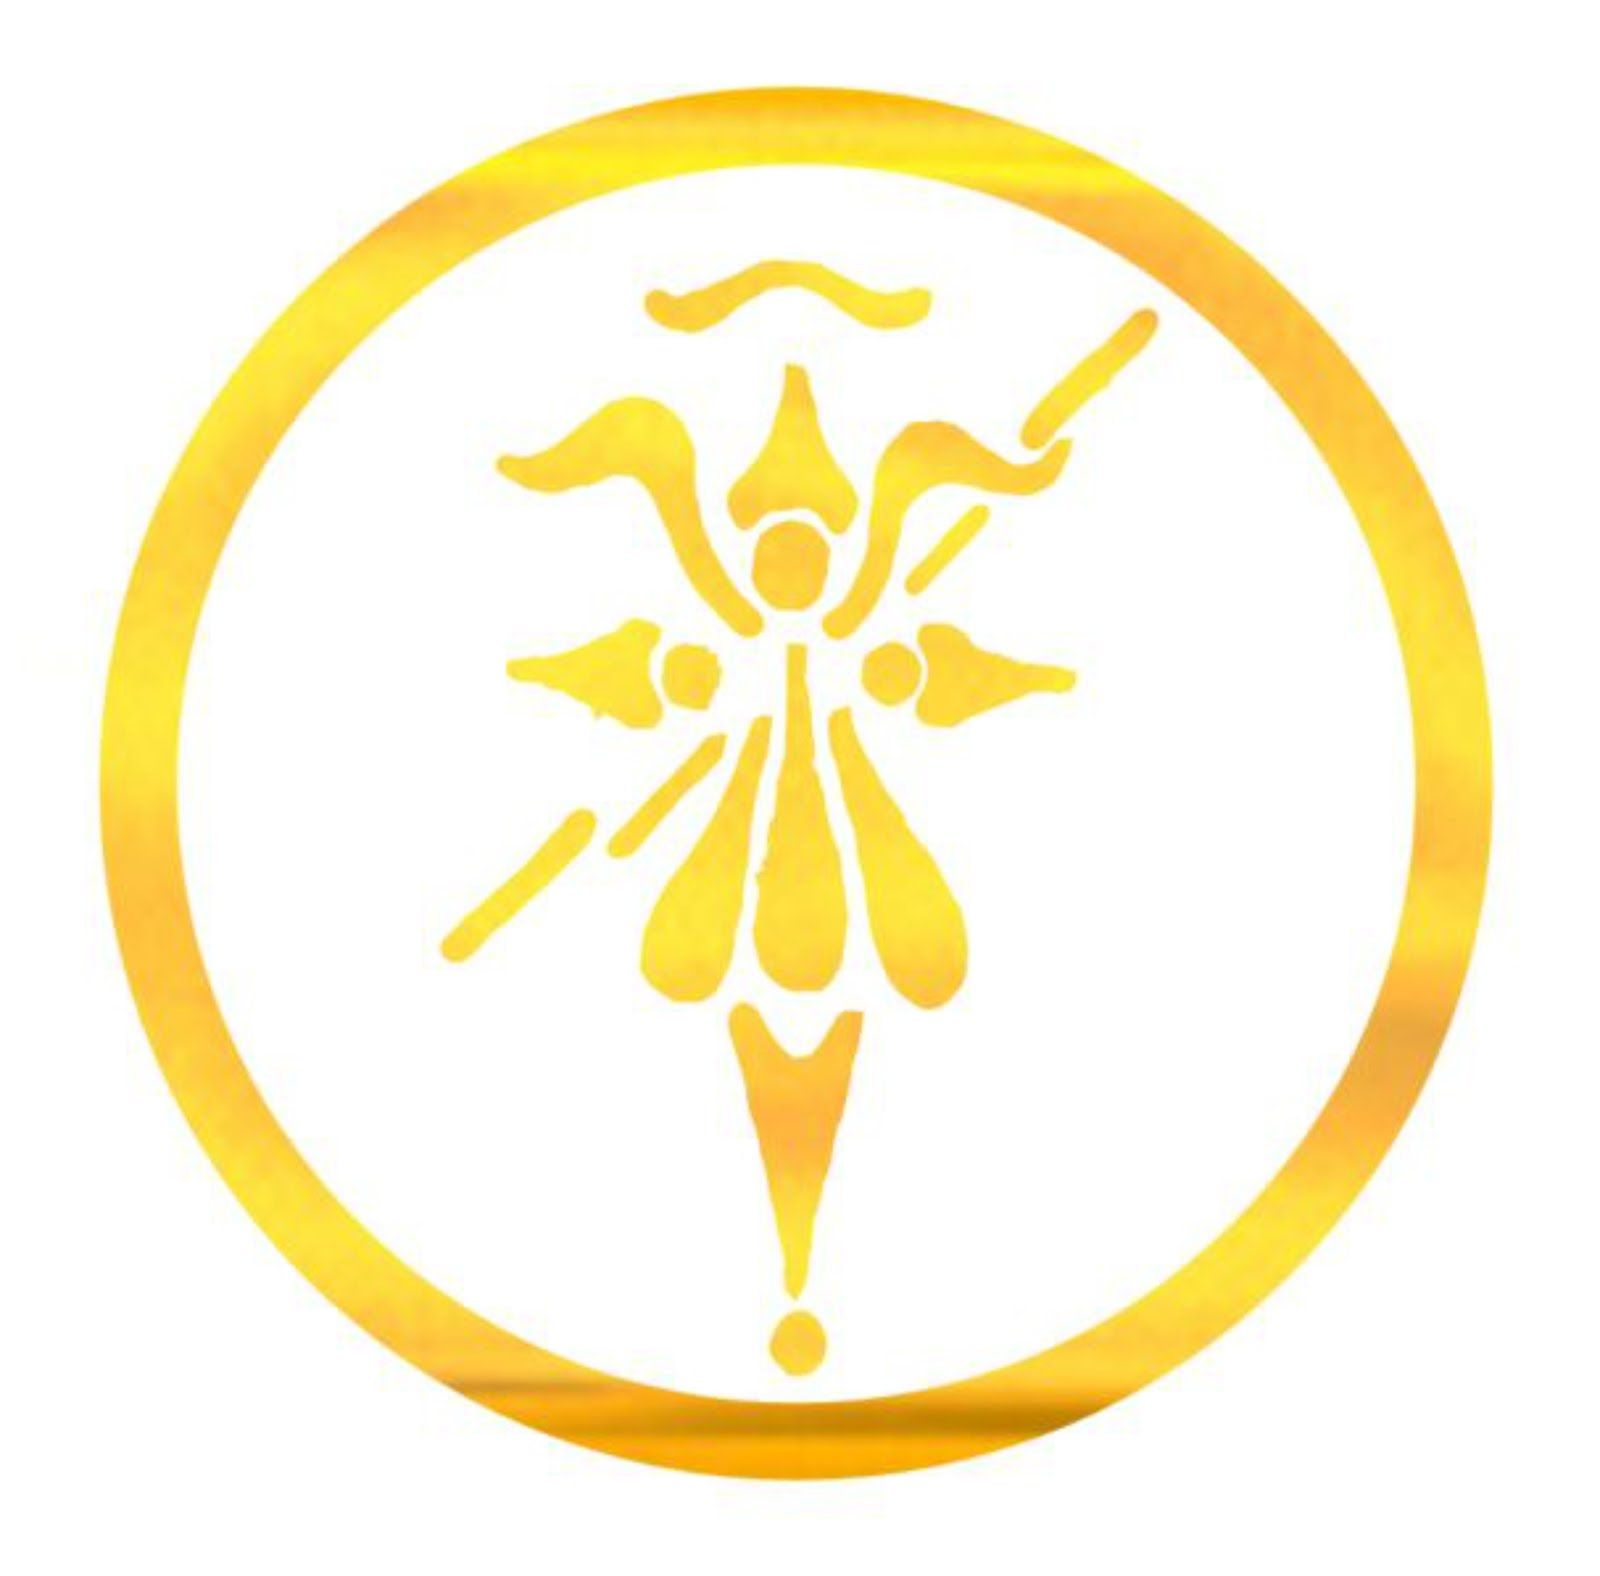 Atlantis symbol of protection gallery symbol and sign ideas image result for symbol of protection lux eterna infinitum image result for symbol of protection buycottarizona biocorpaavc